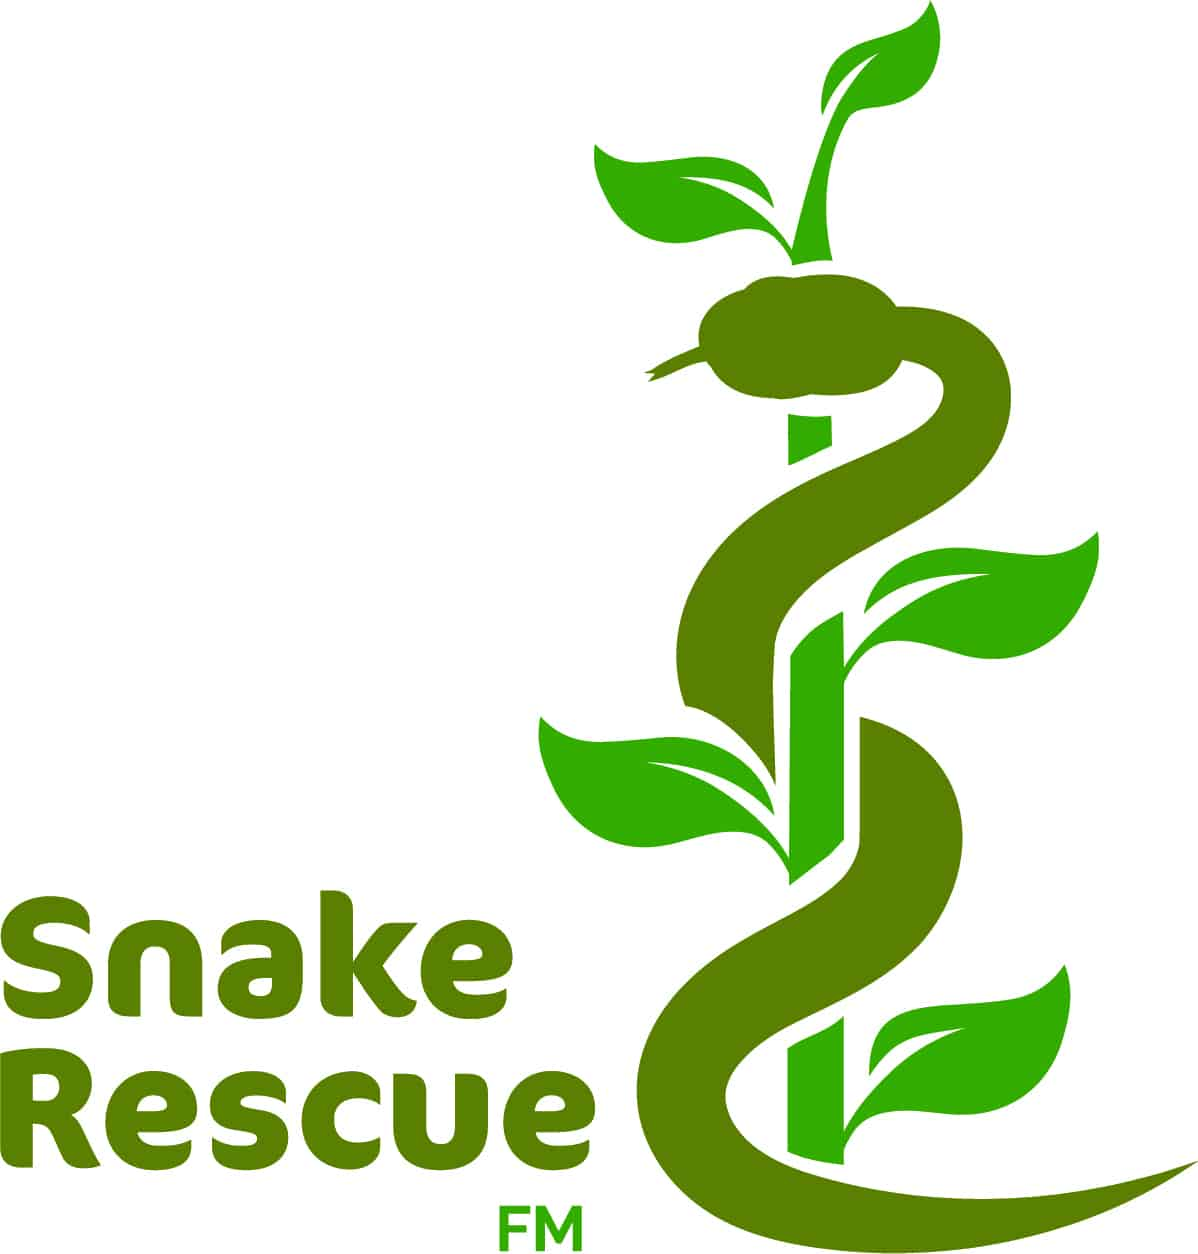 Snake Rescue